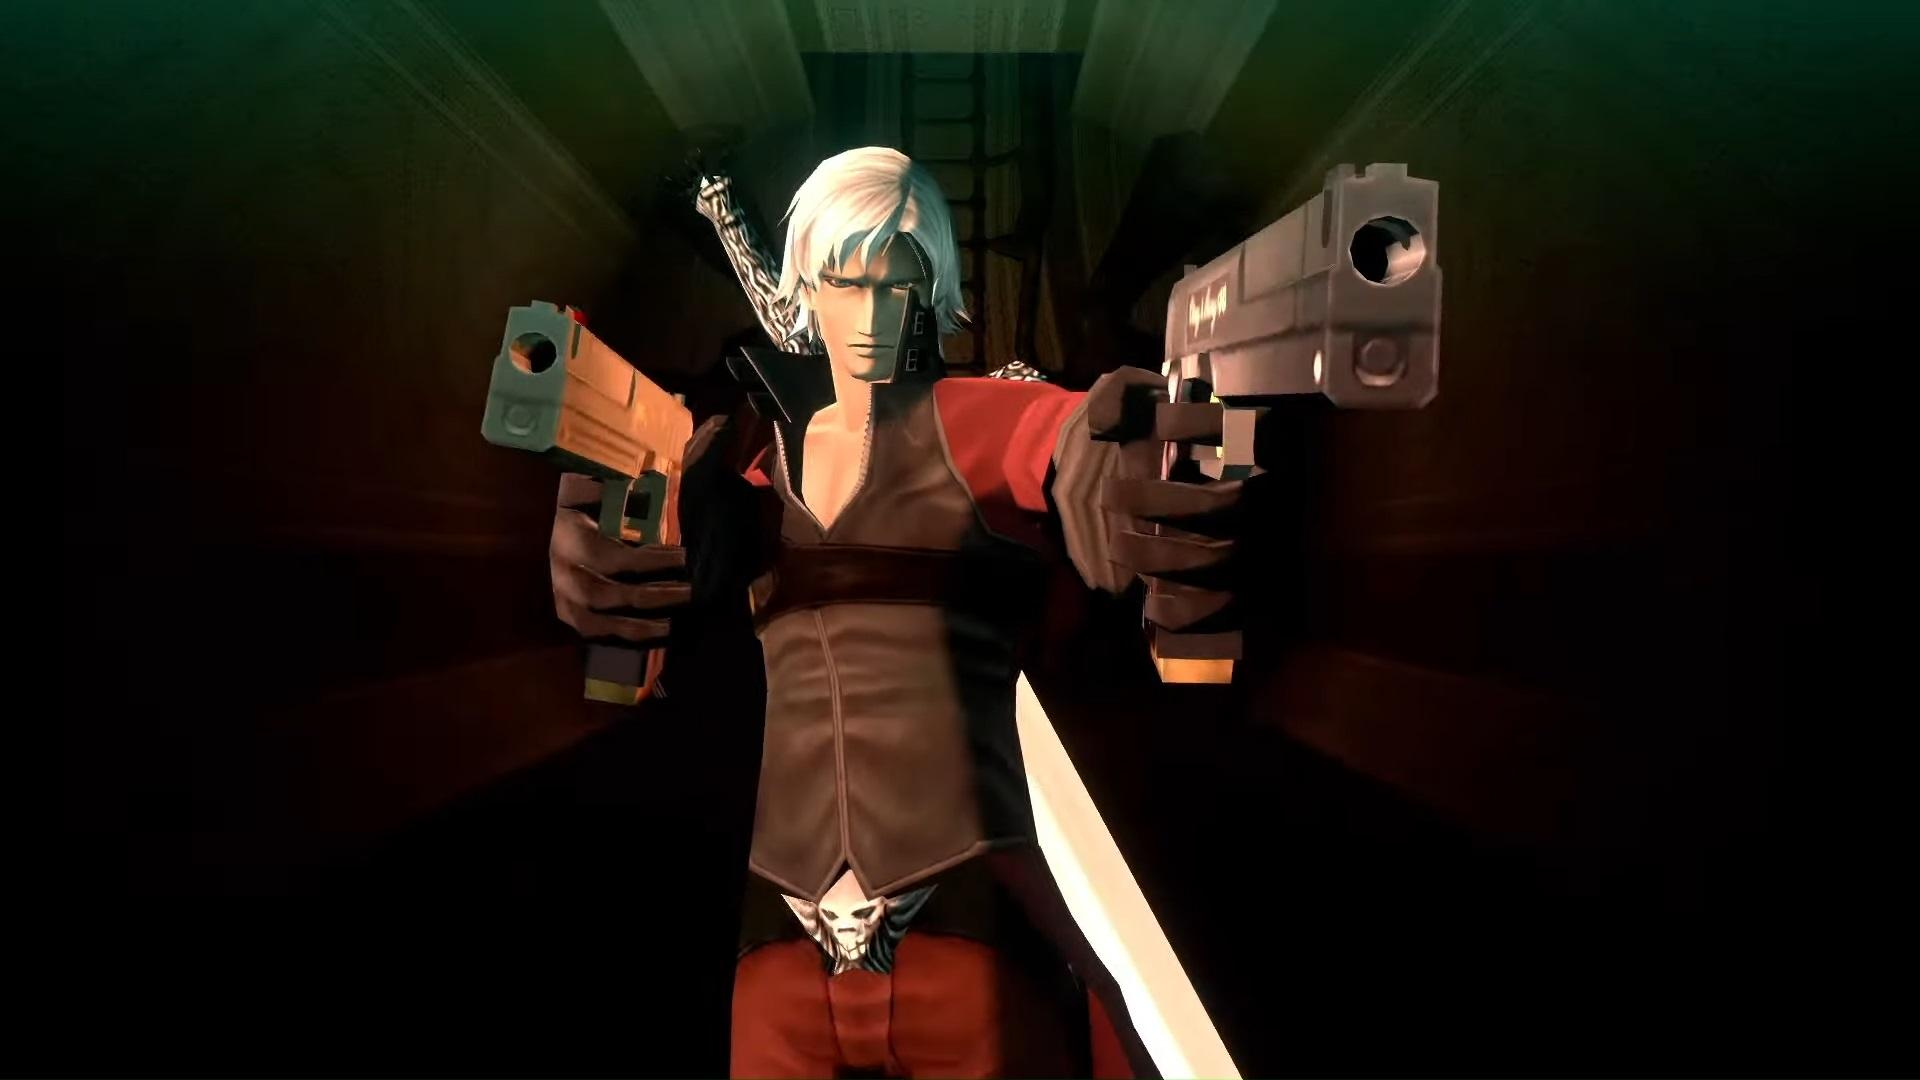 Photo of Dante's Shin Megami Tensei: Nocturne Appearance Will Be Paid DLC in Remake